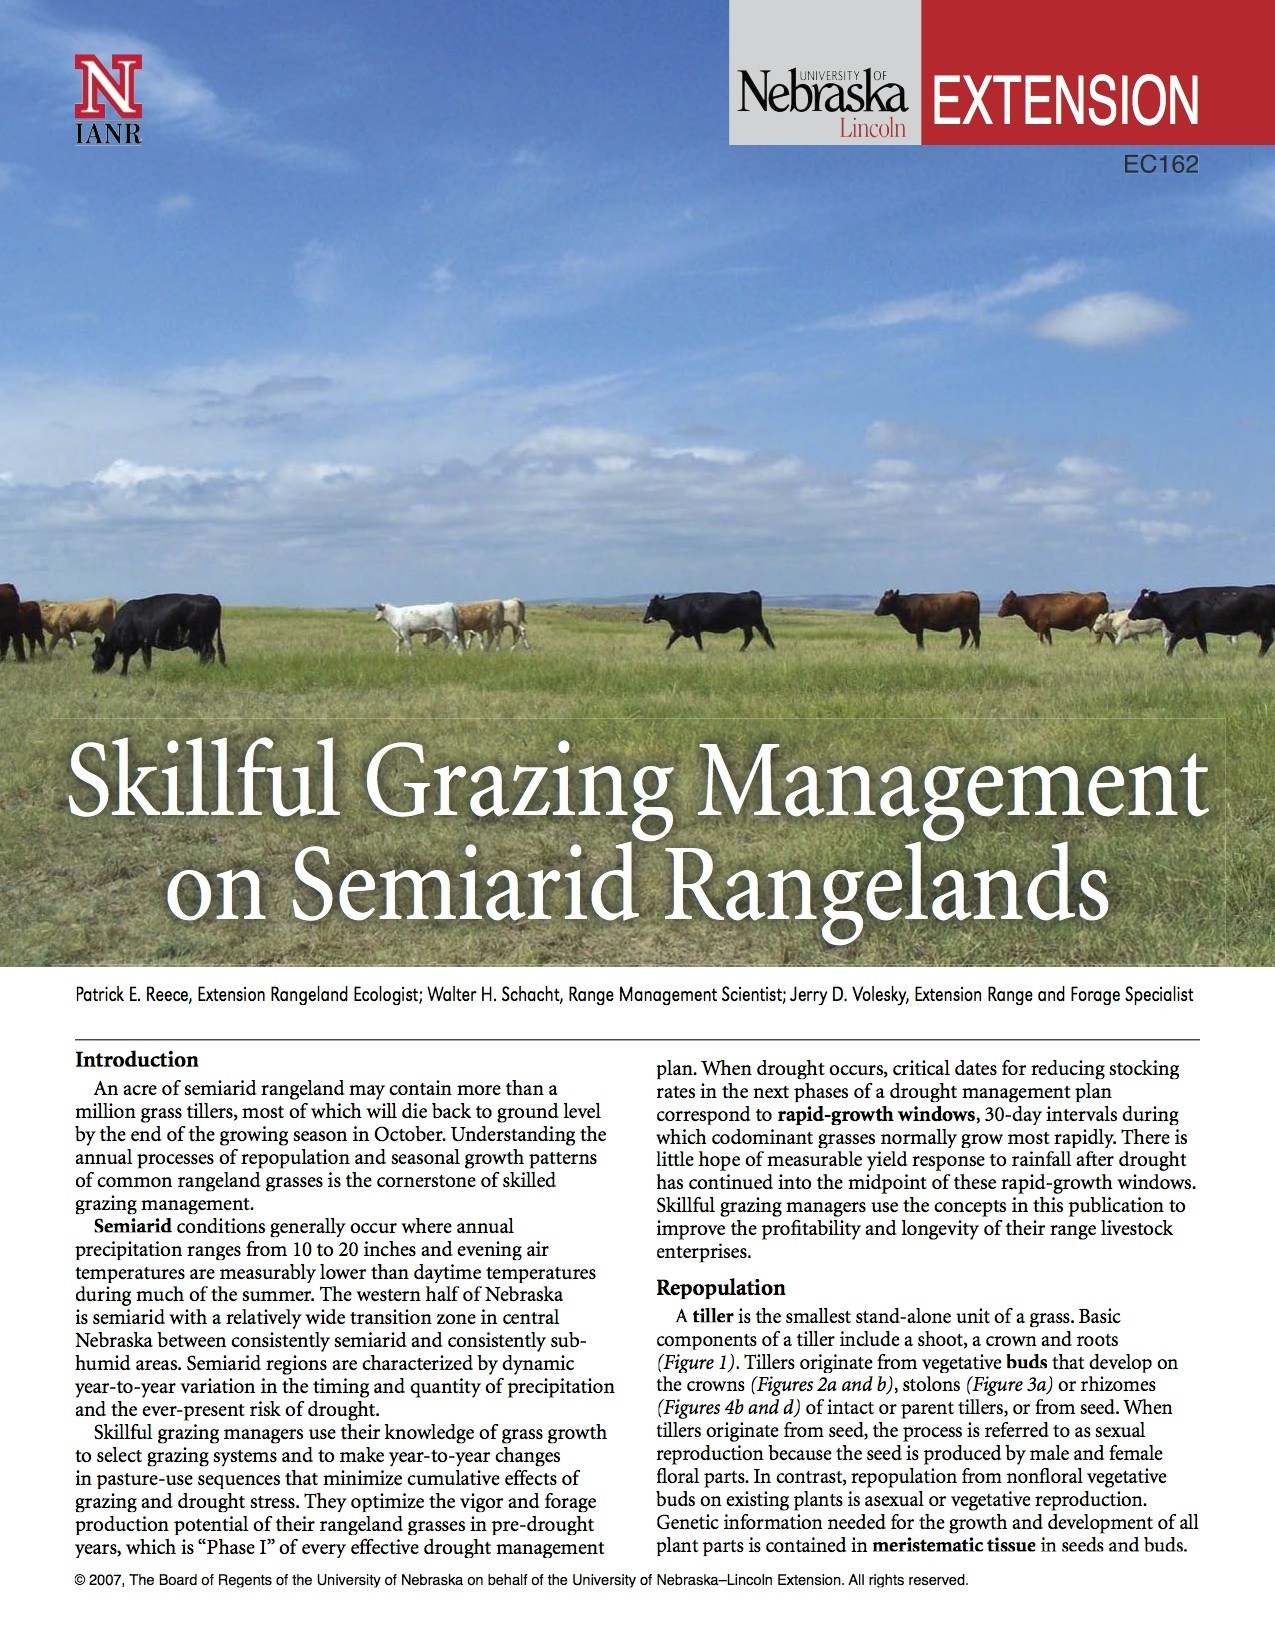 Skillful Grazing Management on Semiarid Rangelands